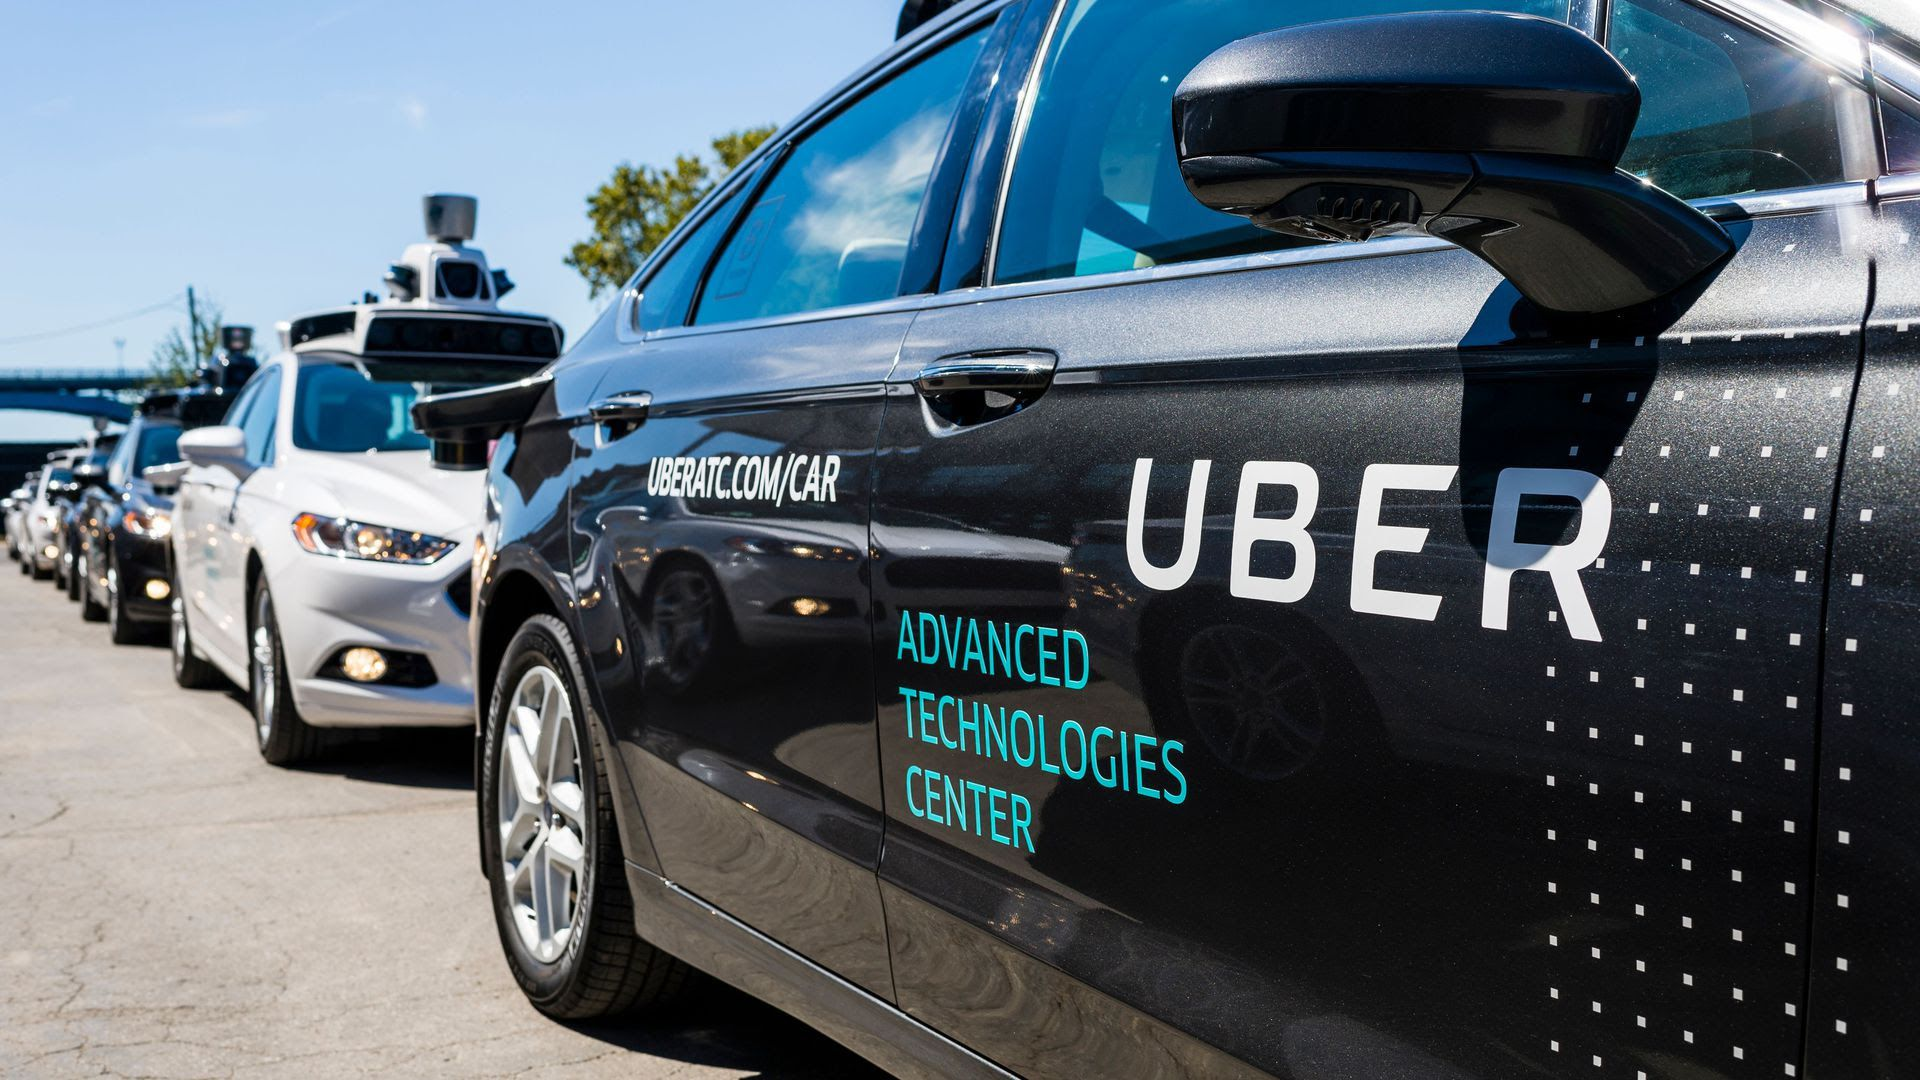 Uber's driverless technology strategy